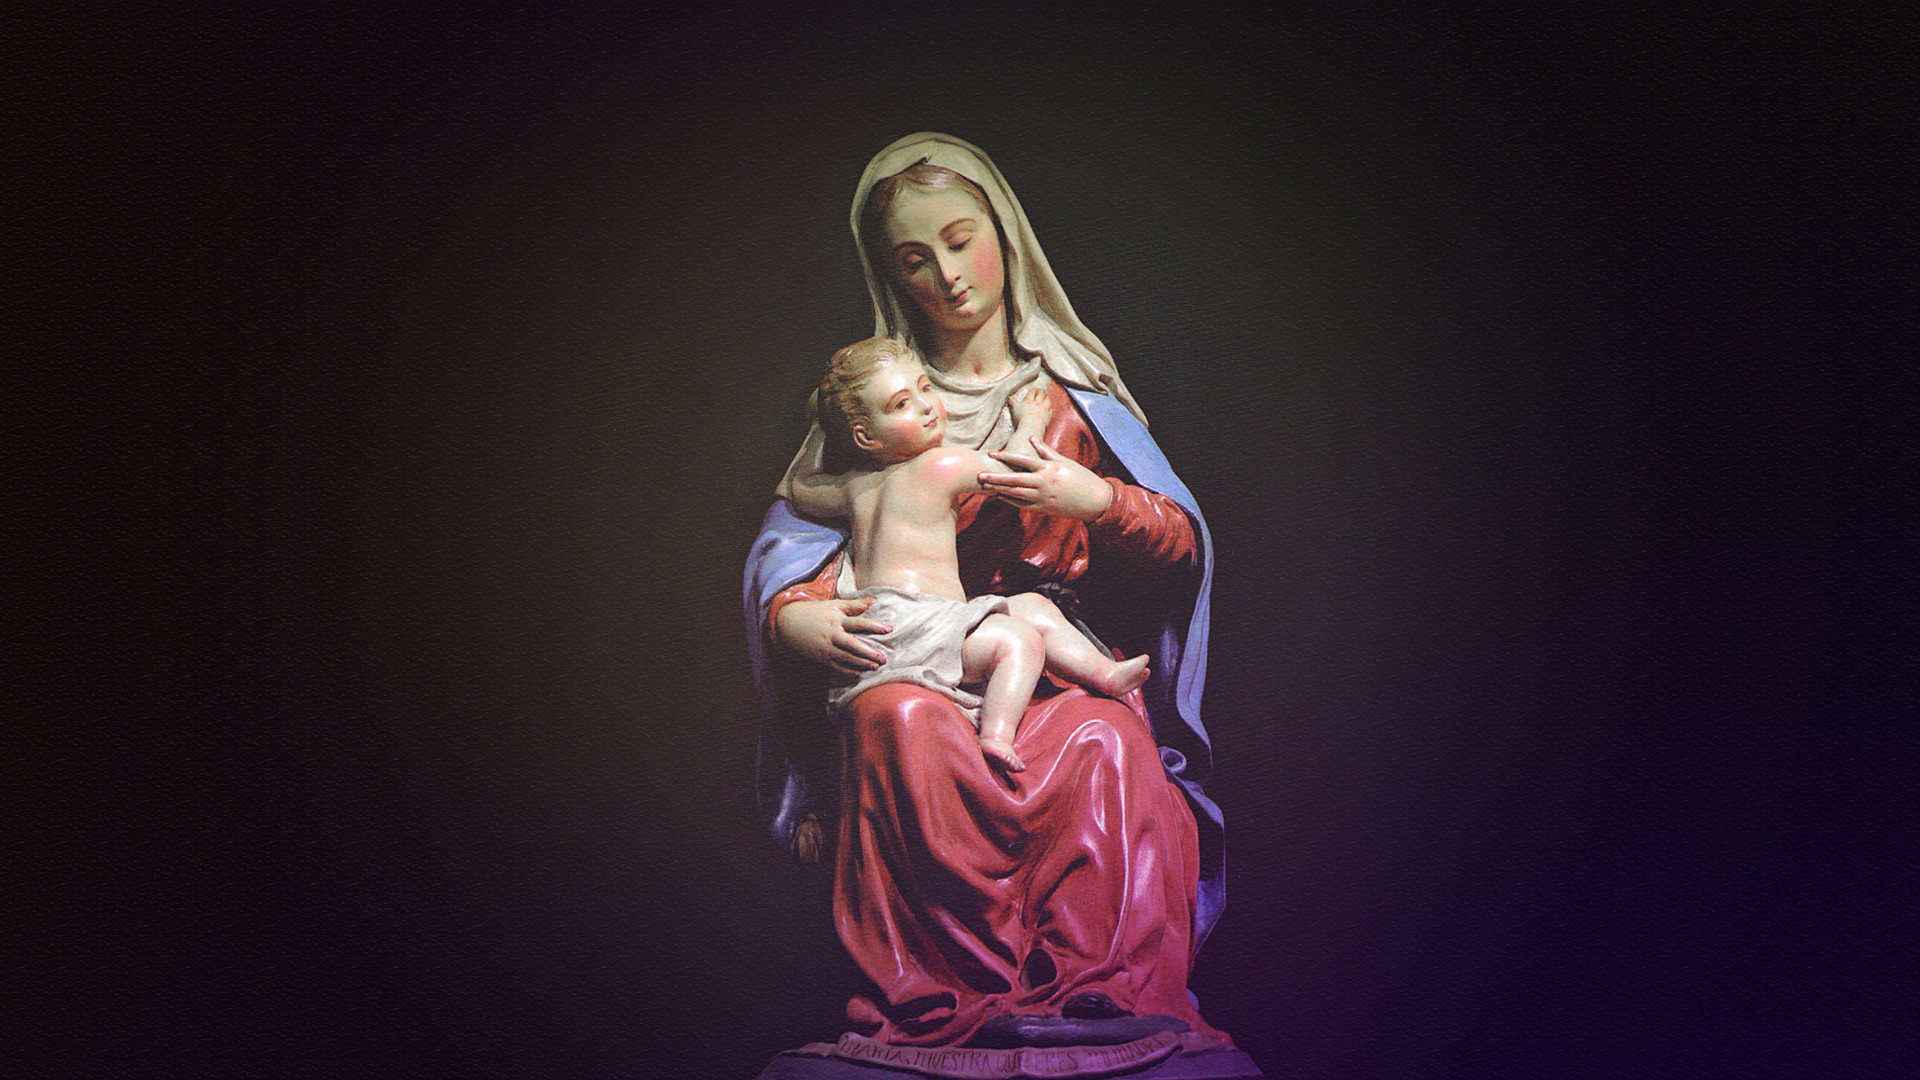 Mary Mother of God Wallpaper 1920x1080